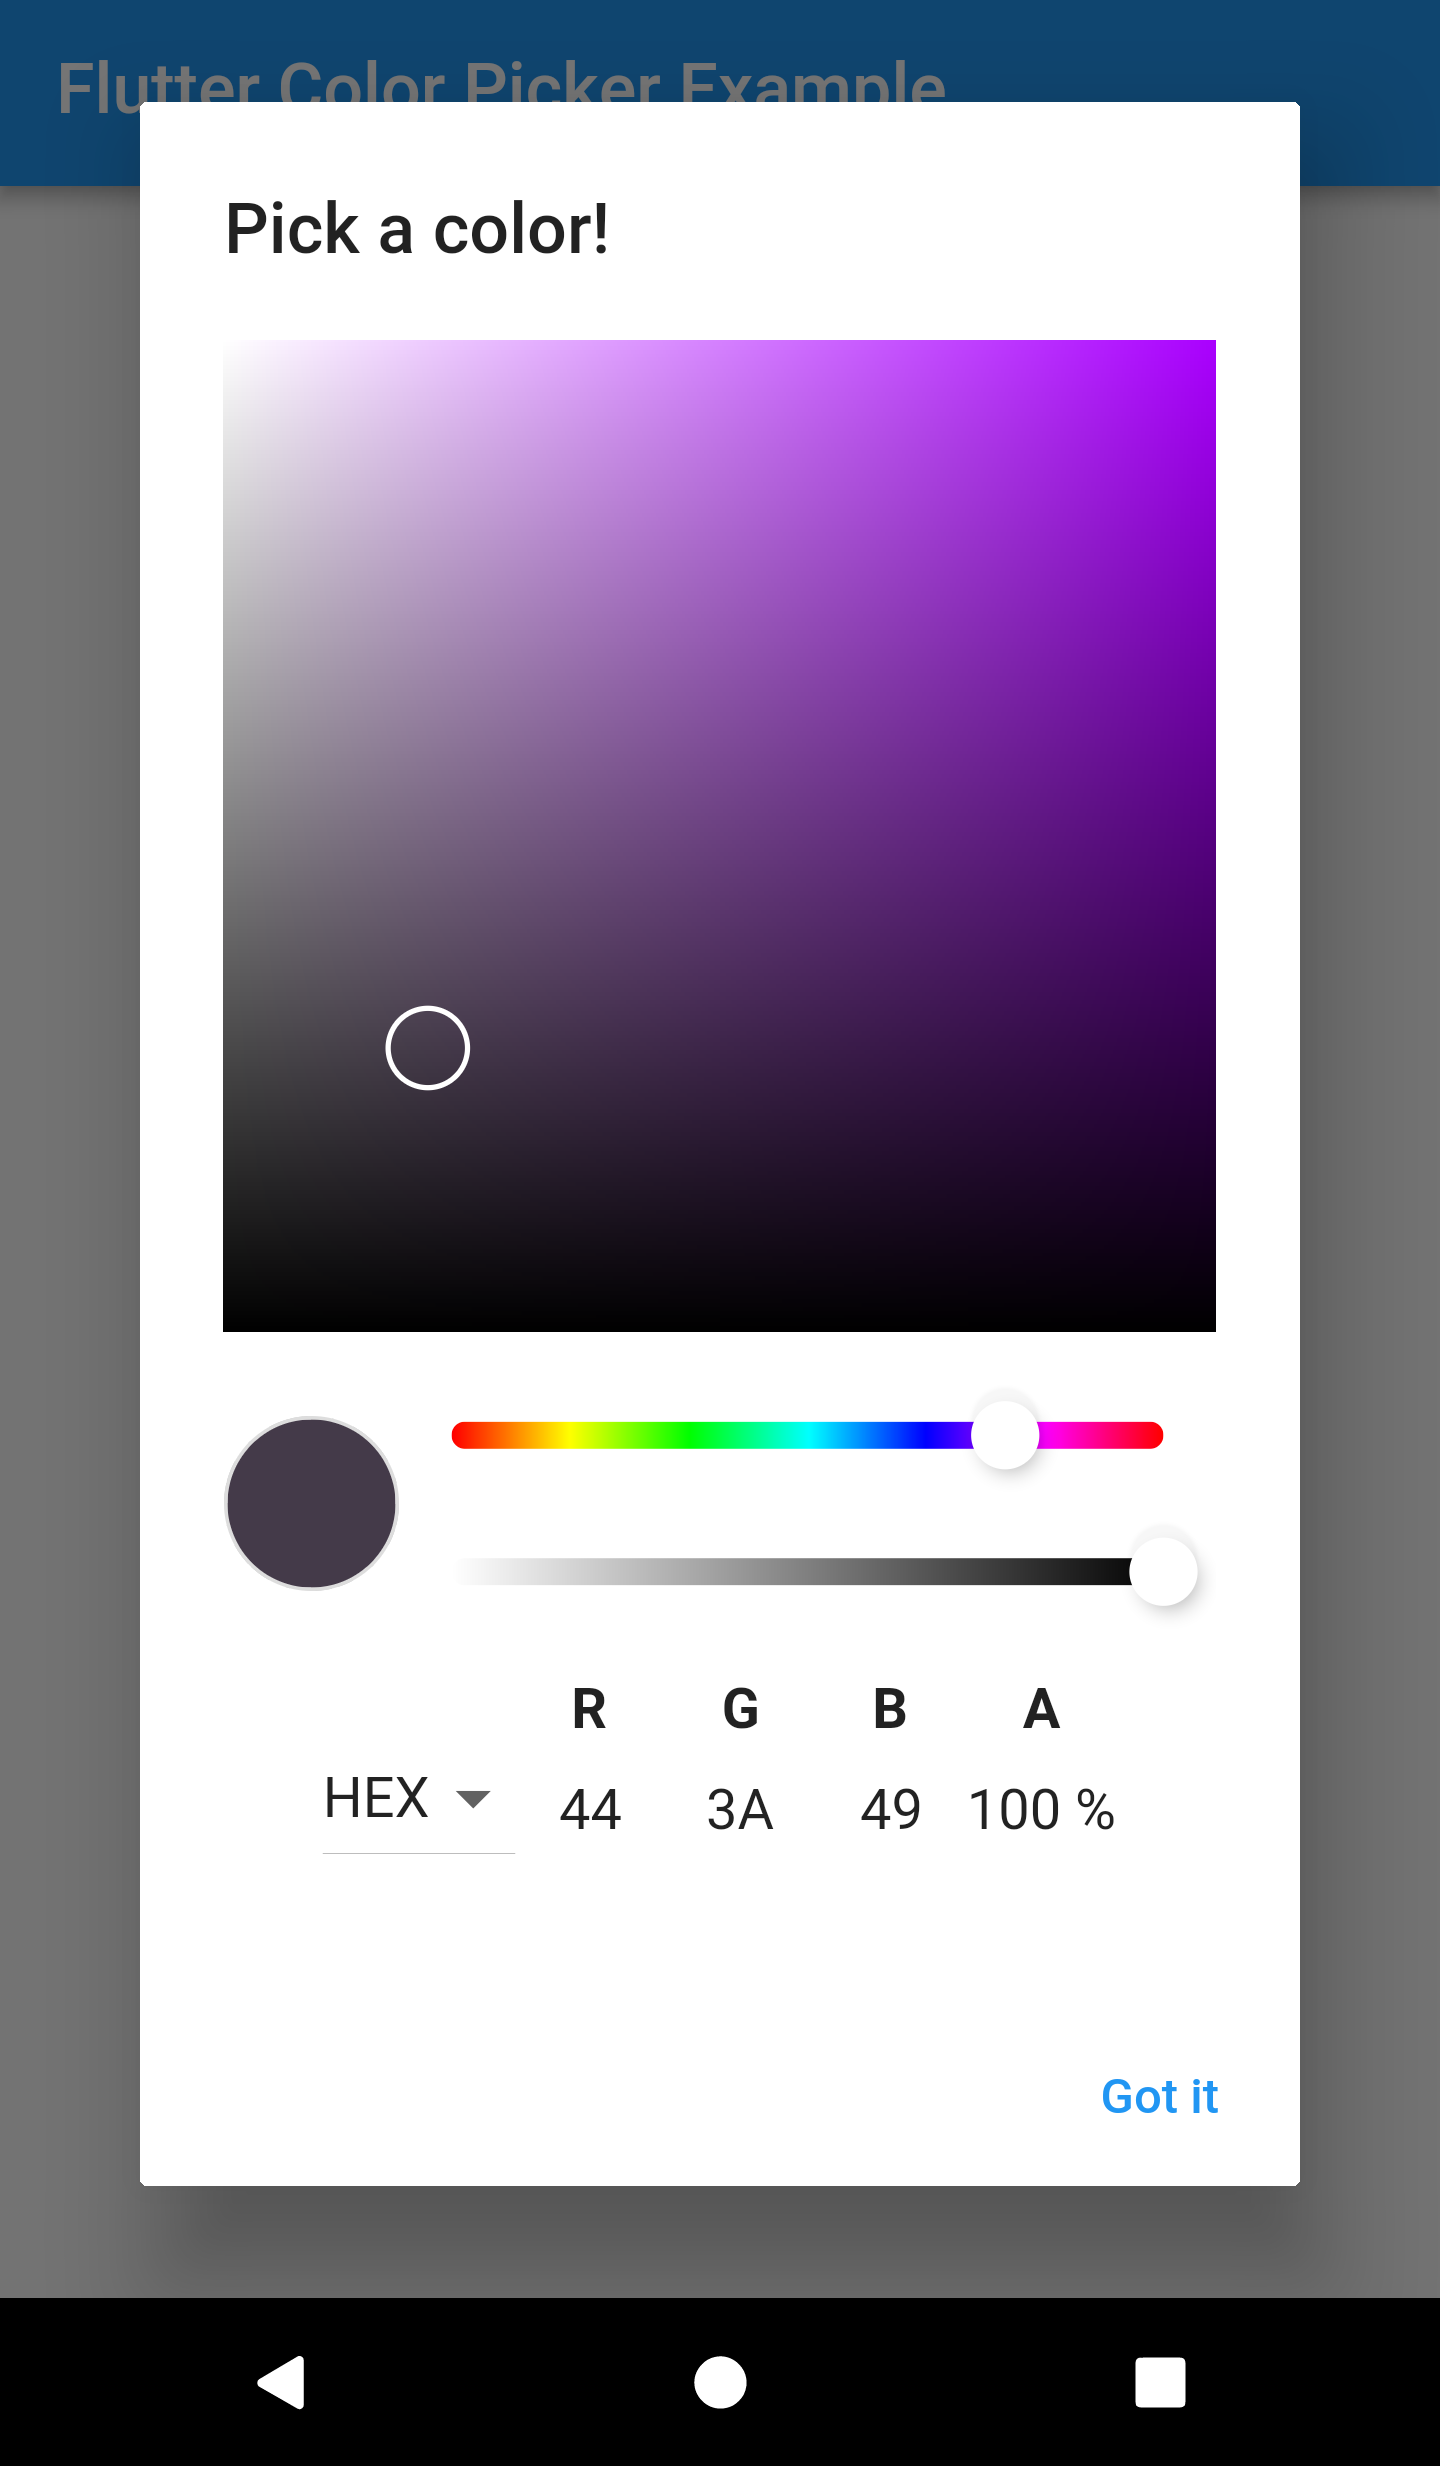 How to work around using the colorpicker inside an